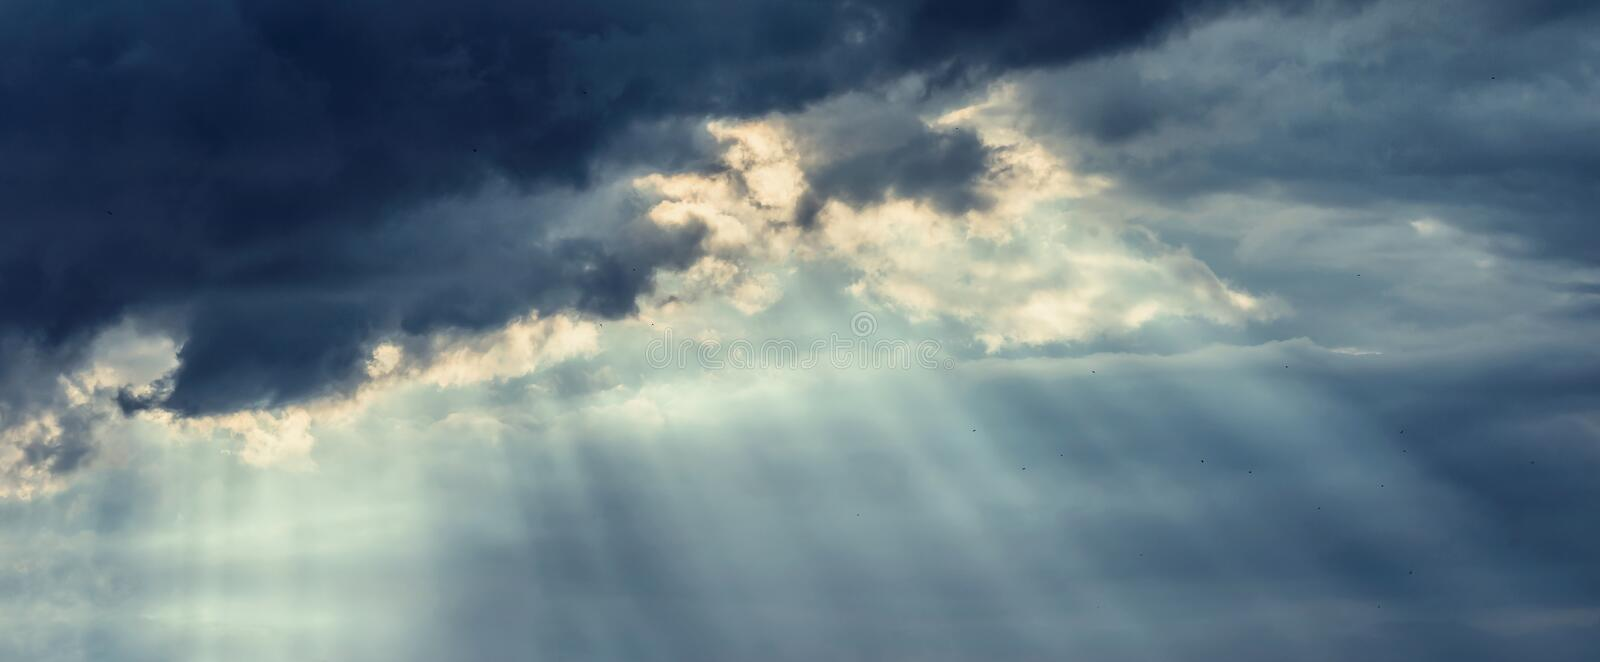 Beautiful dark storm cloudy sky with rays of the sun breaking through clouds stock image